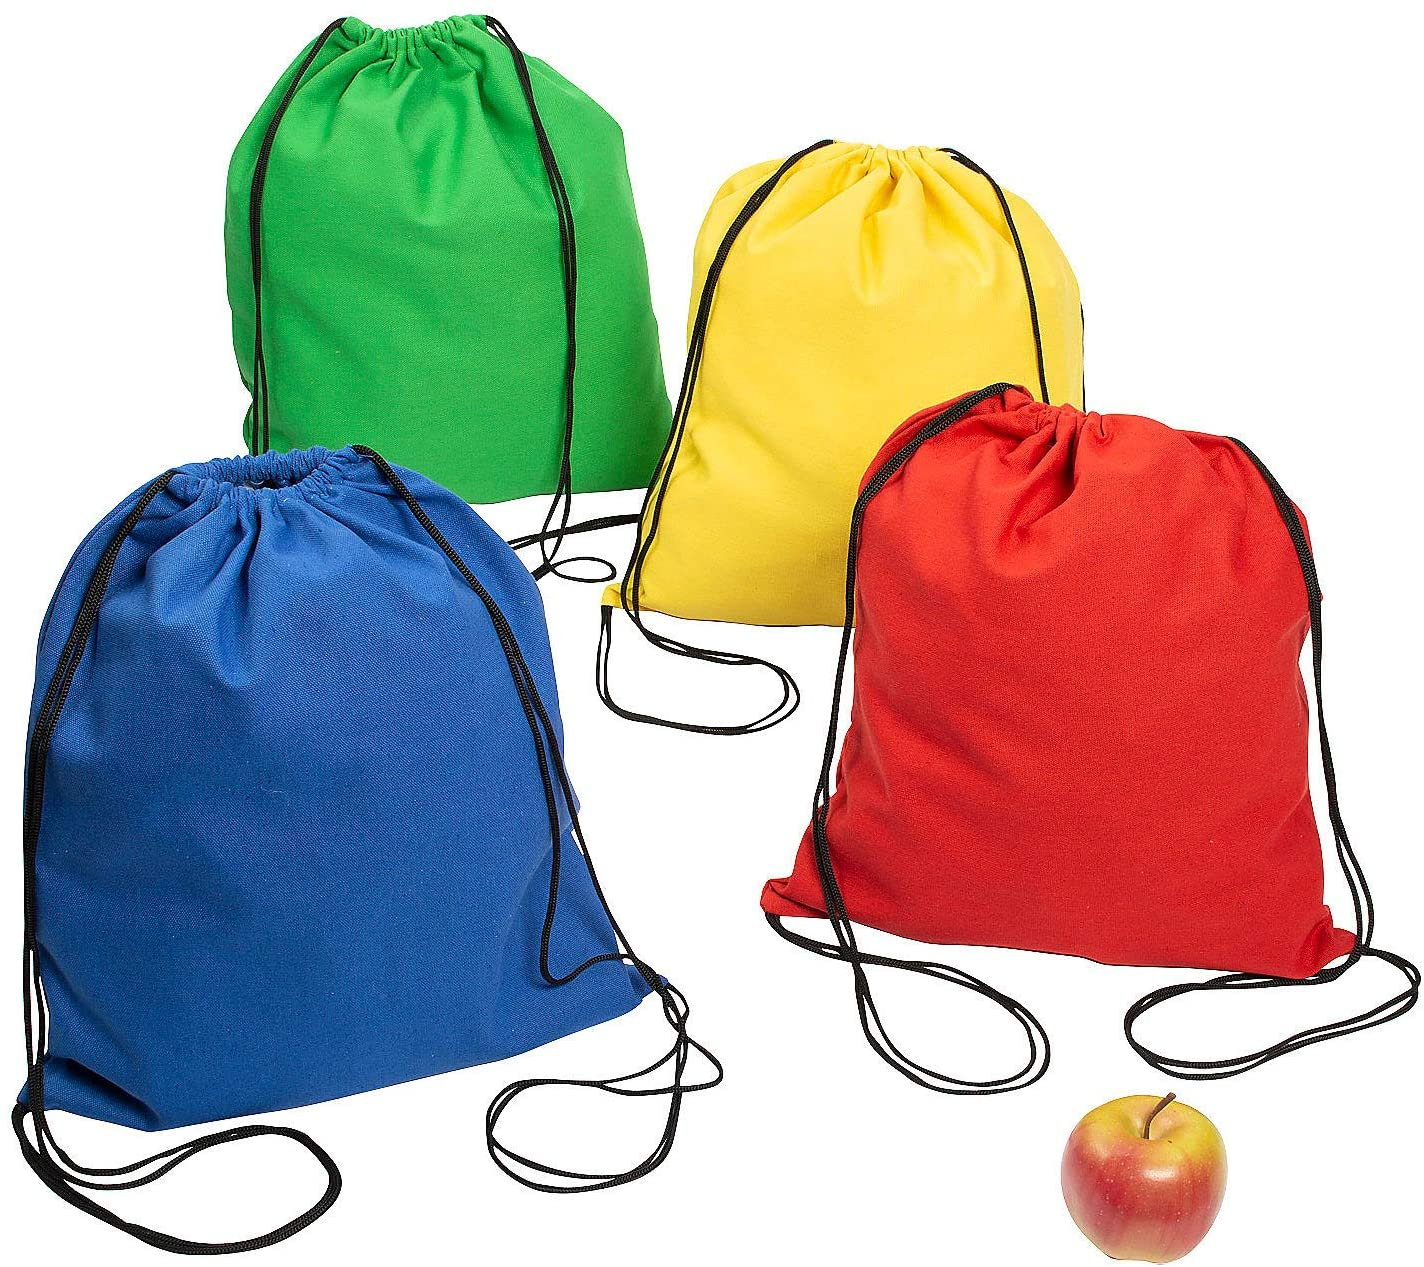 Large Bright Canvas Drawstring Bags - Set of 12 - Reusable Apparel Accessories